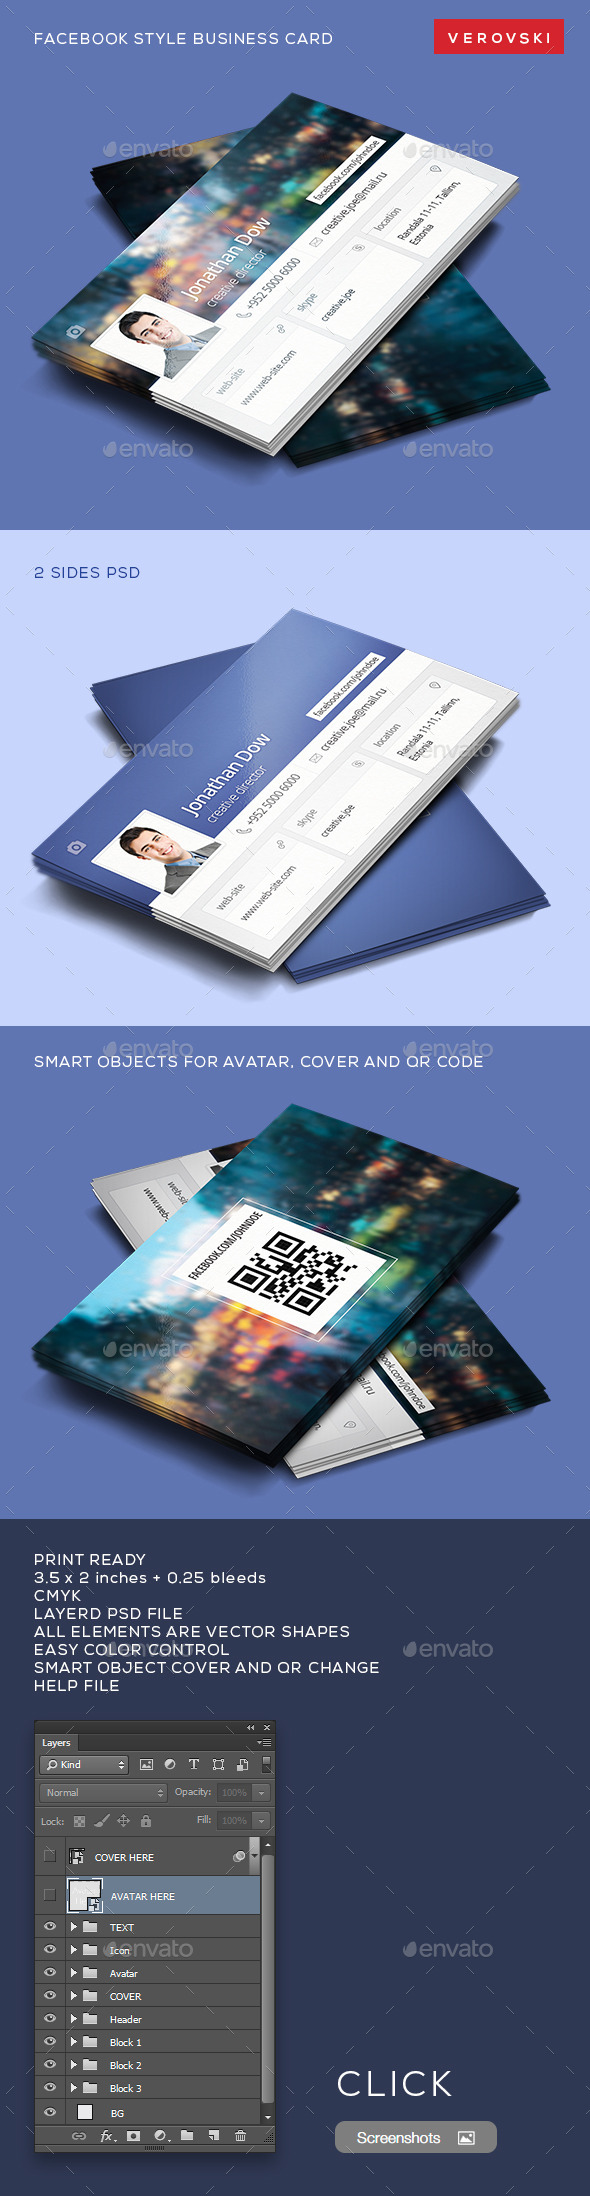 GraphicRiver Facebook Style Business Card 9497515